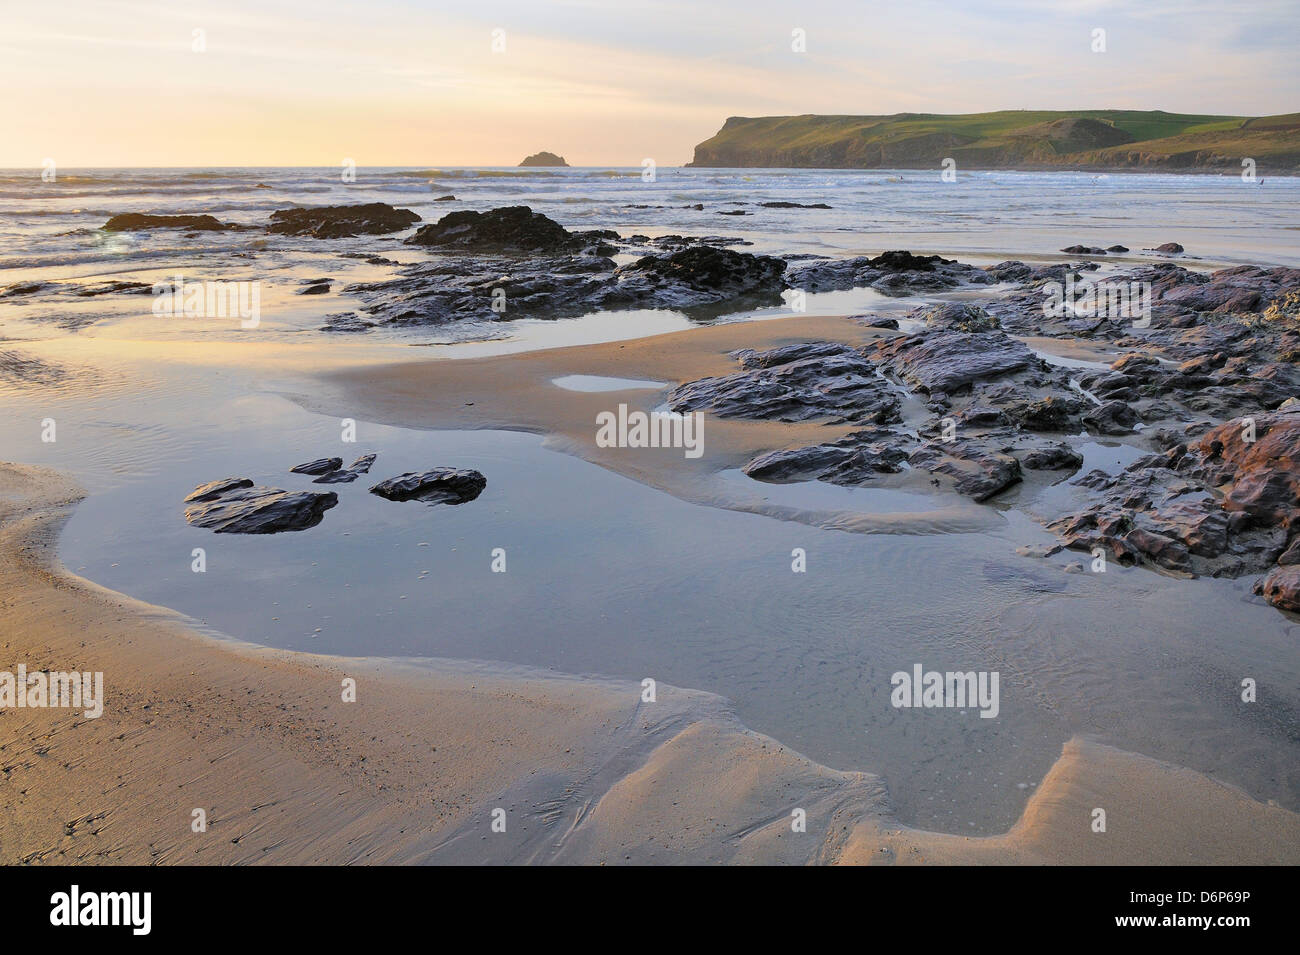 Tide retreating at sunset leaving tide pools among rocks, with Pentire Head in the background, Polzeath, Cornwall, - Stock Image